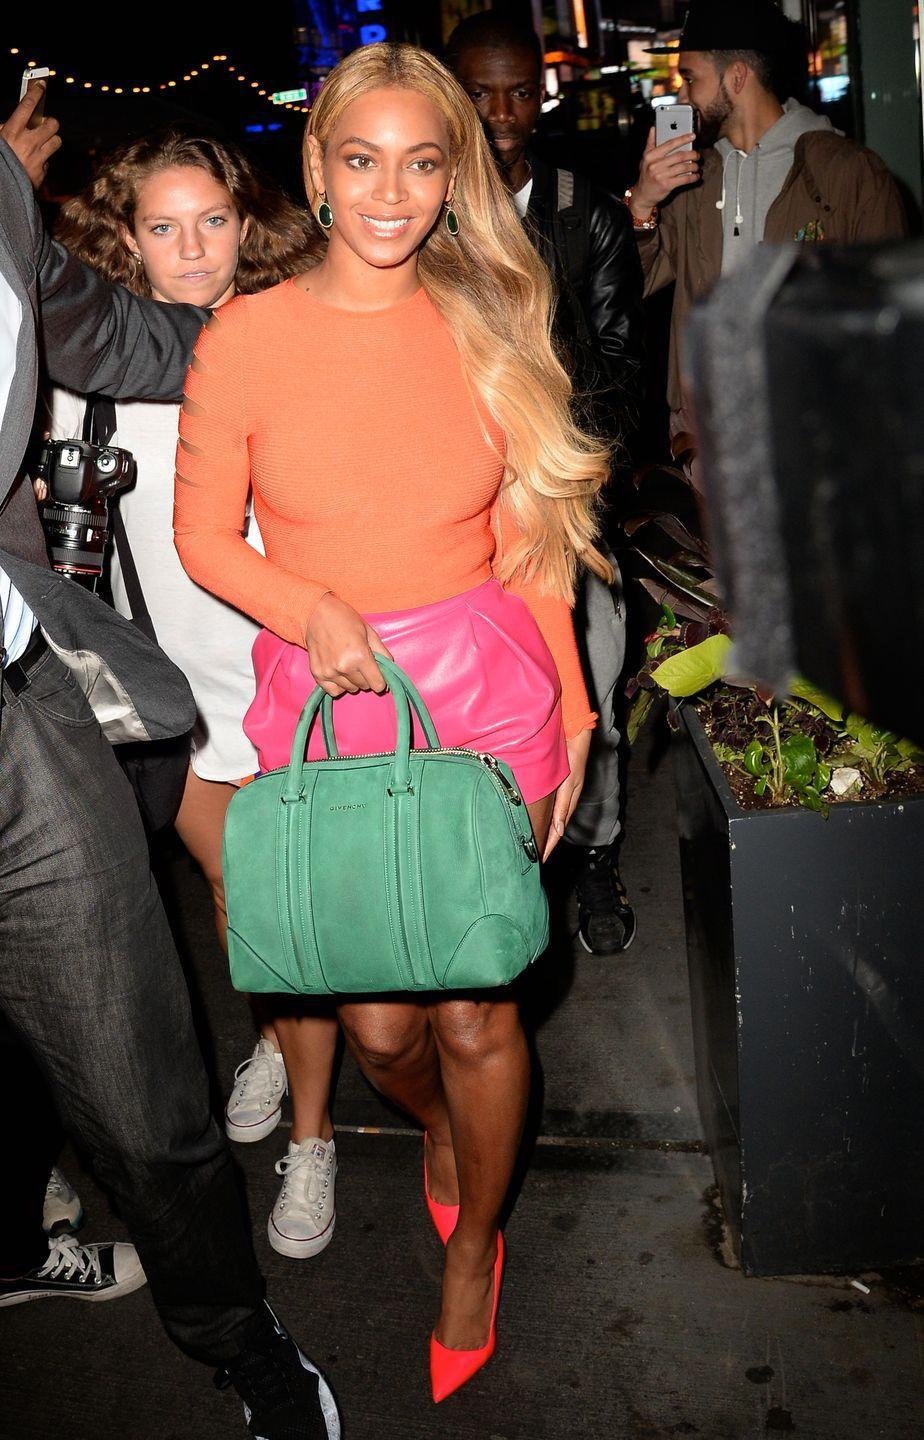 <p>This design was similar to a bowling bag with its rounded edges, but it launched into stardom when Beyoncé carried a colorful version of it in 2015. Even with all the other bright colors Bey wore, it was the item that stole the spotlight. </p>